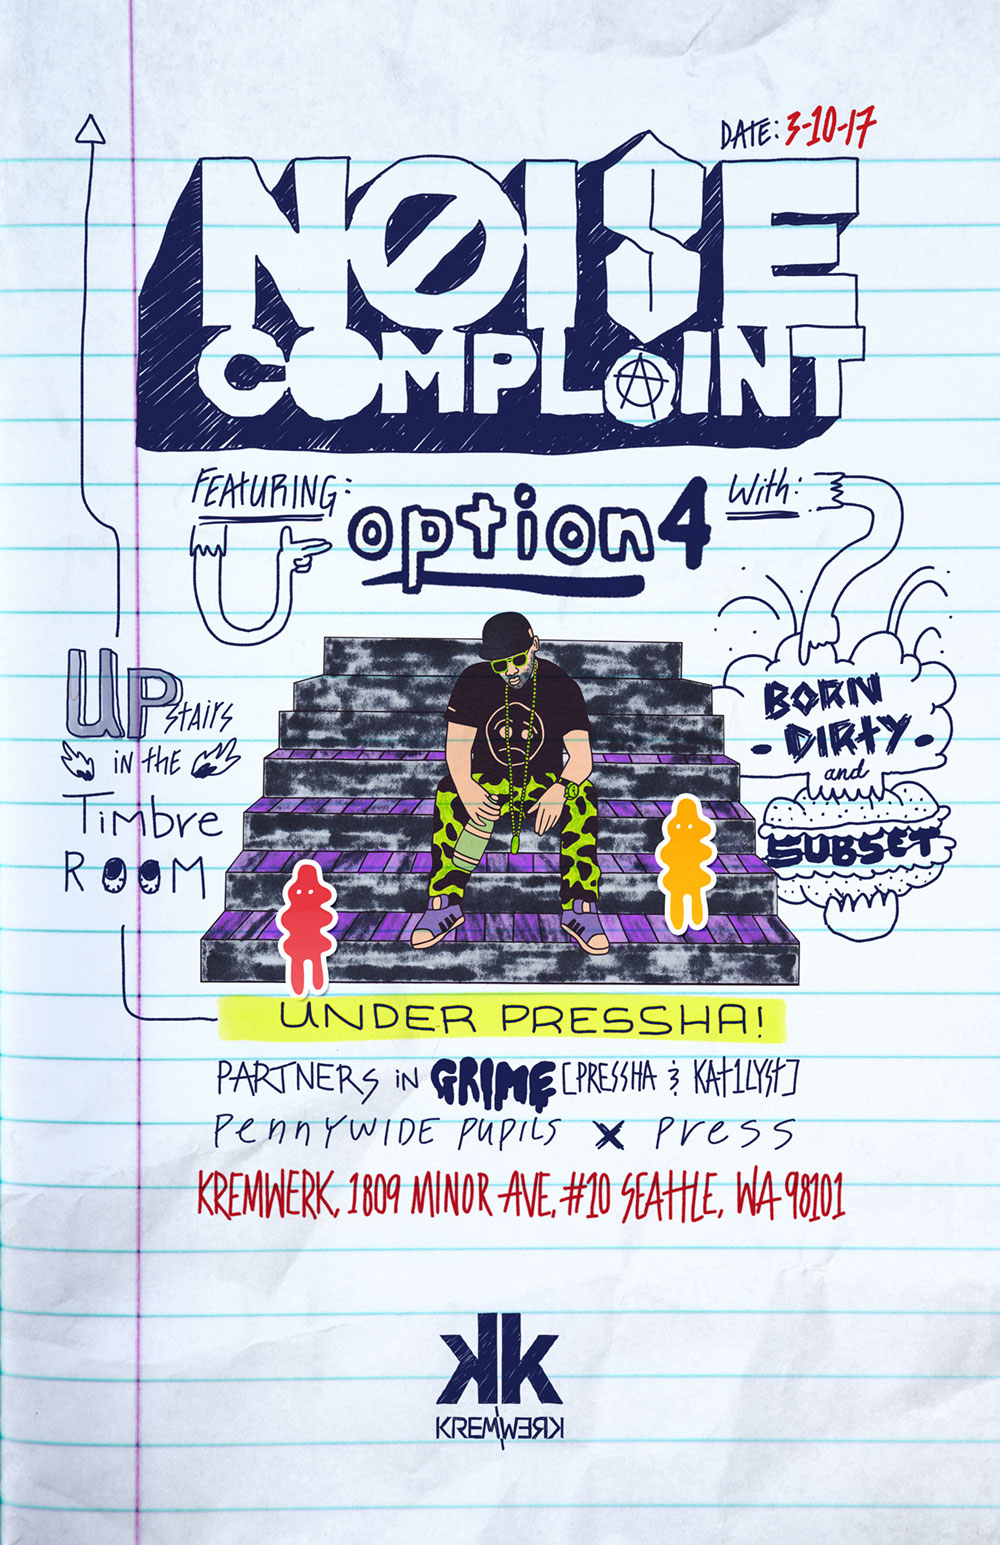 Flyer for Noise Complaint